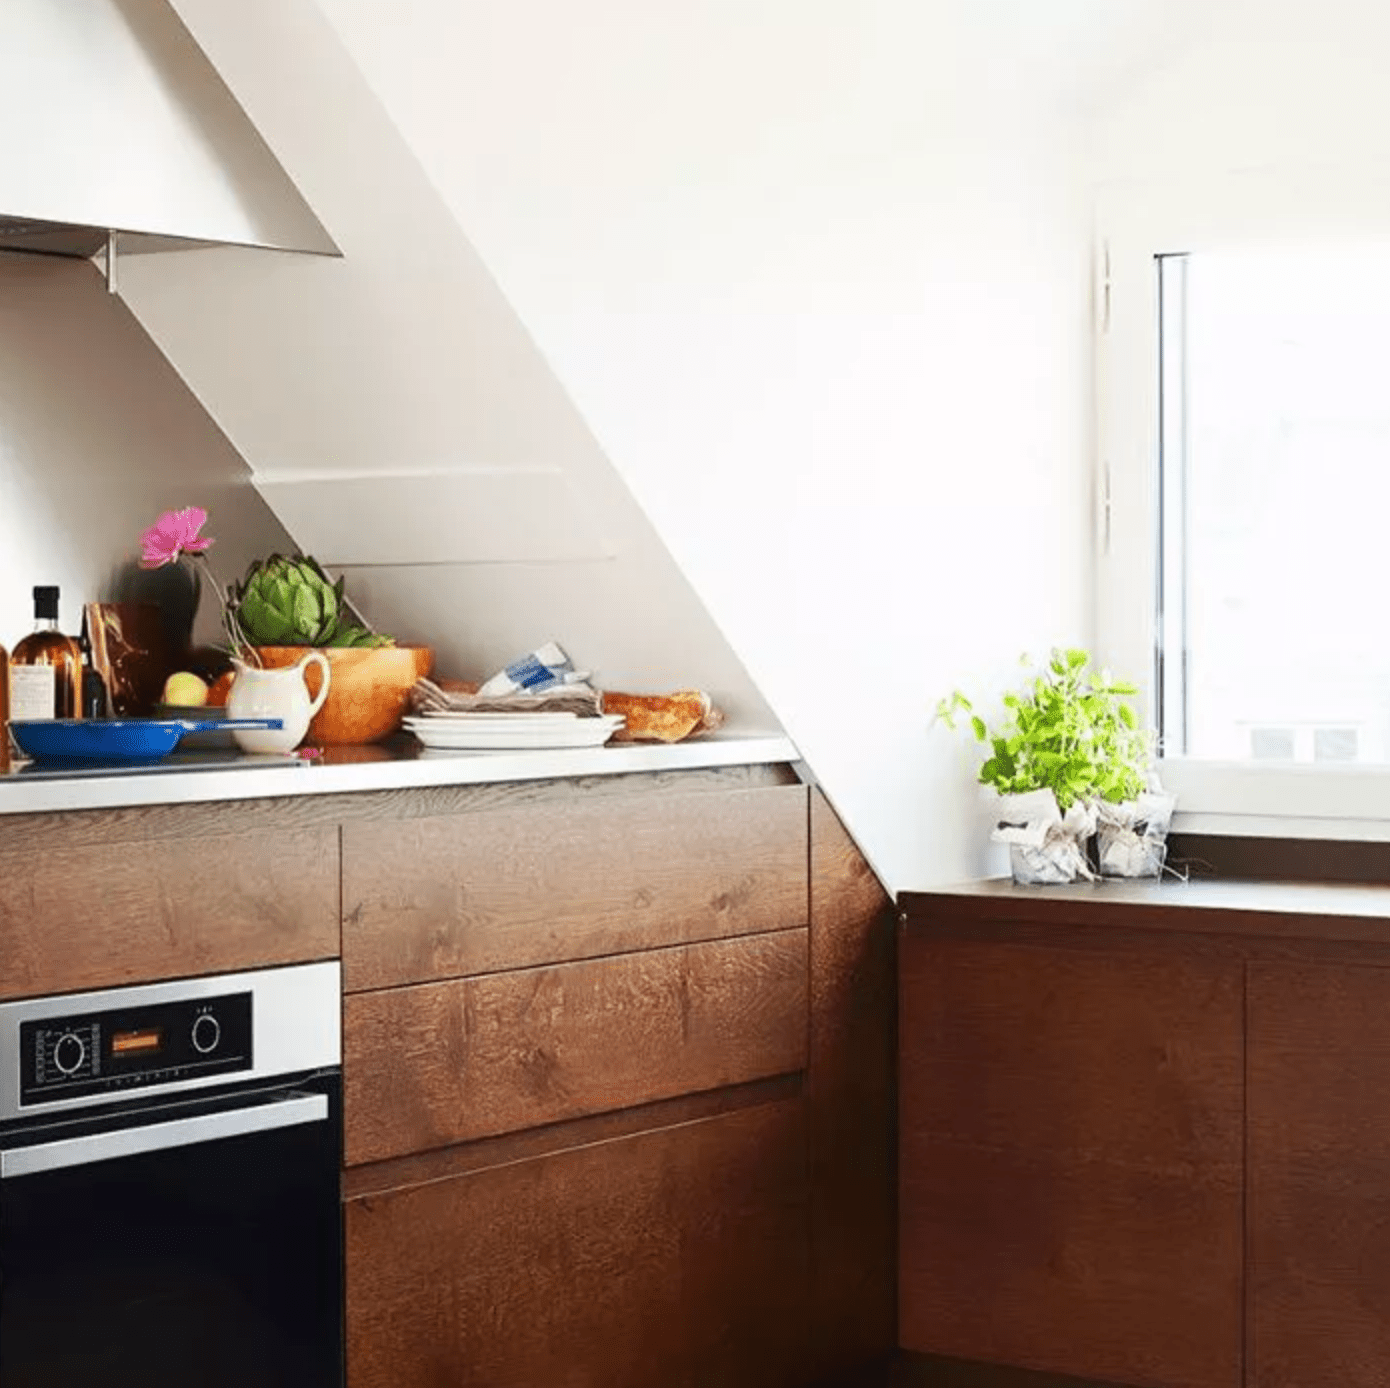 25 Beautiful Small Kitchen Design Ideas